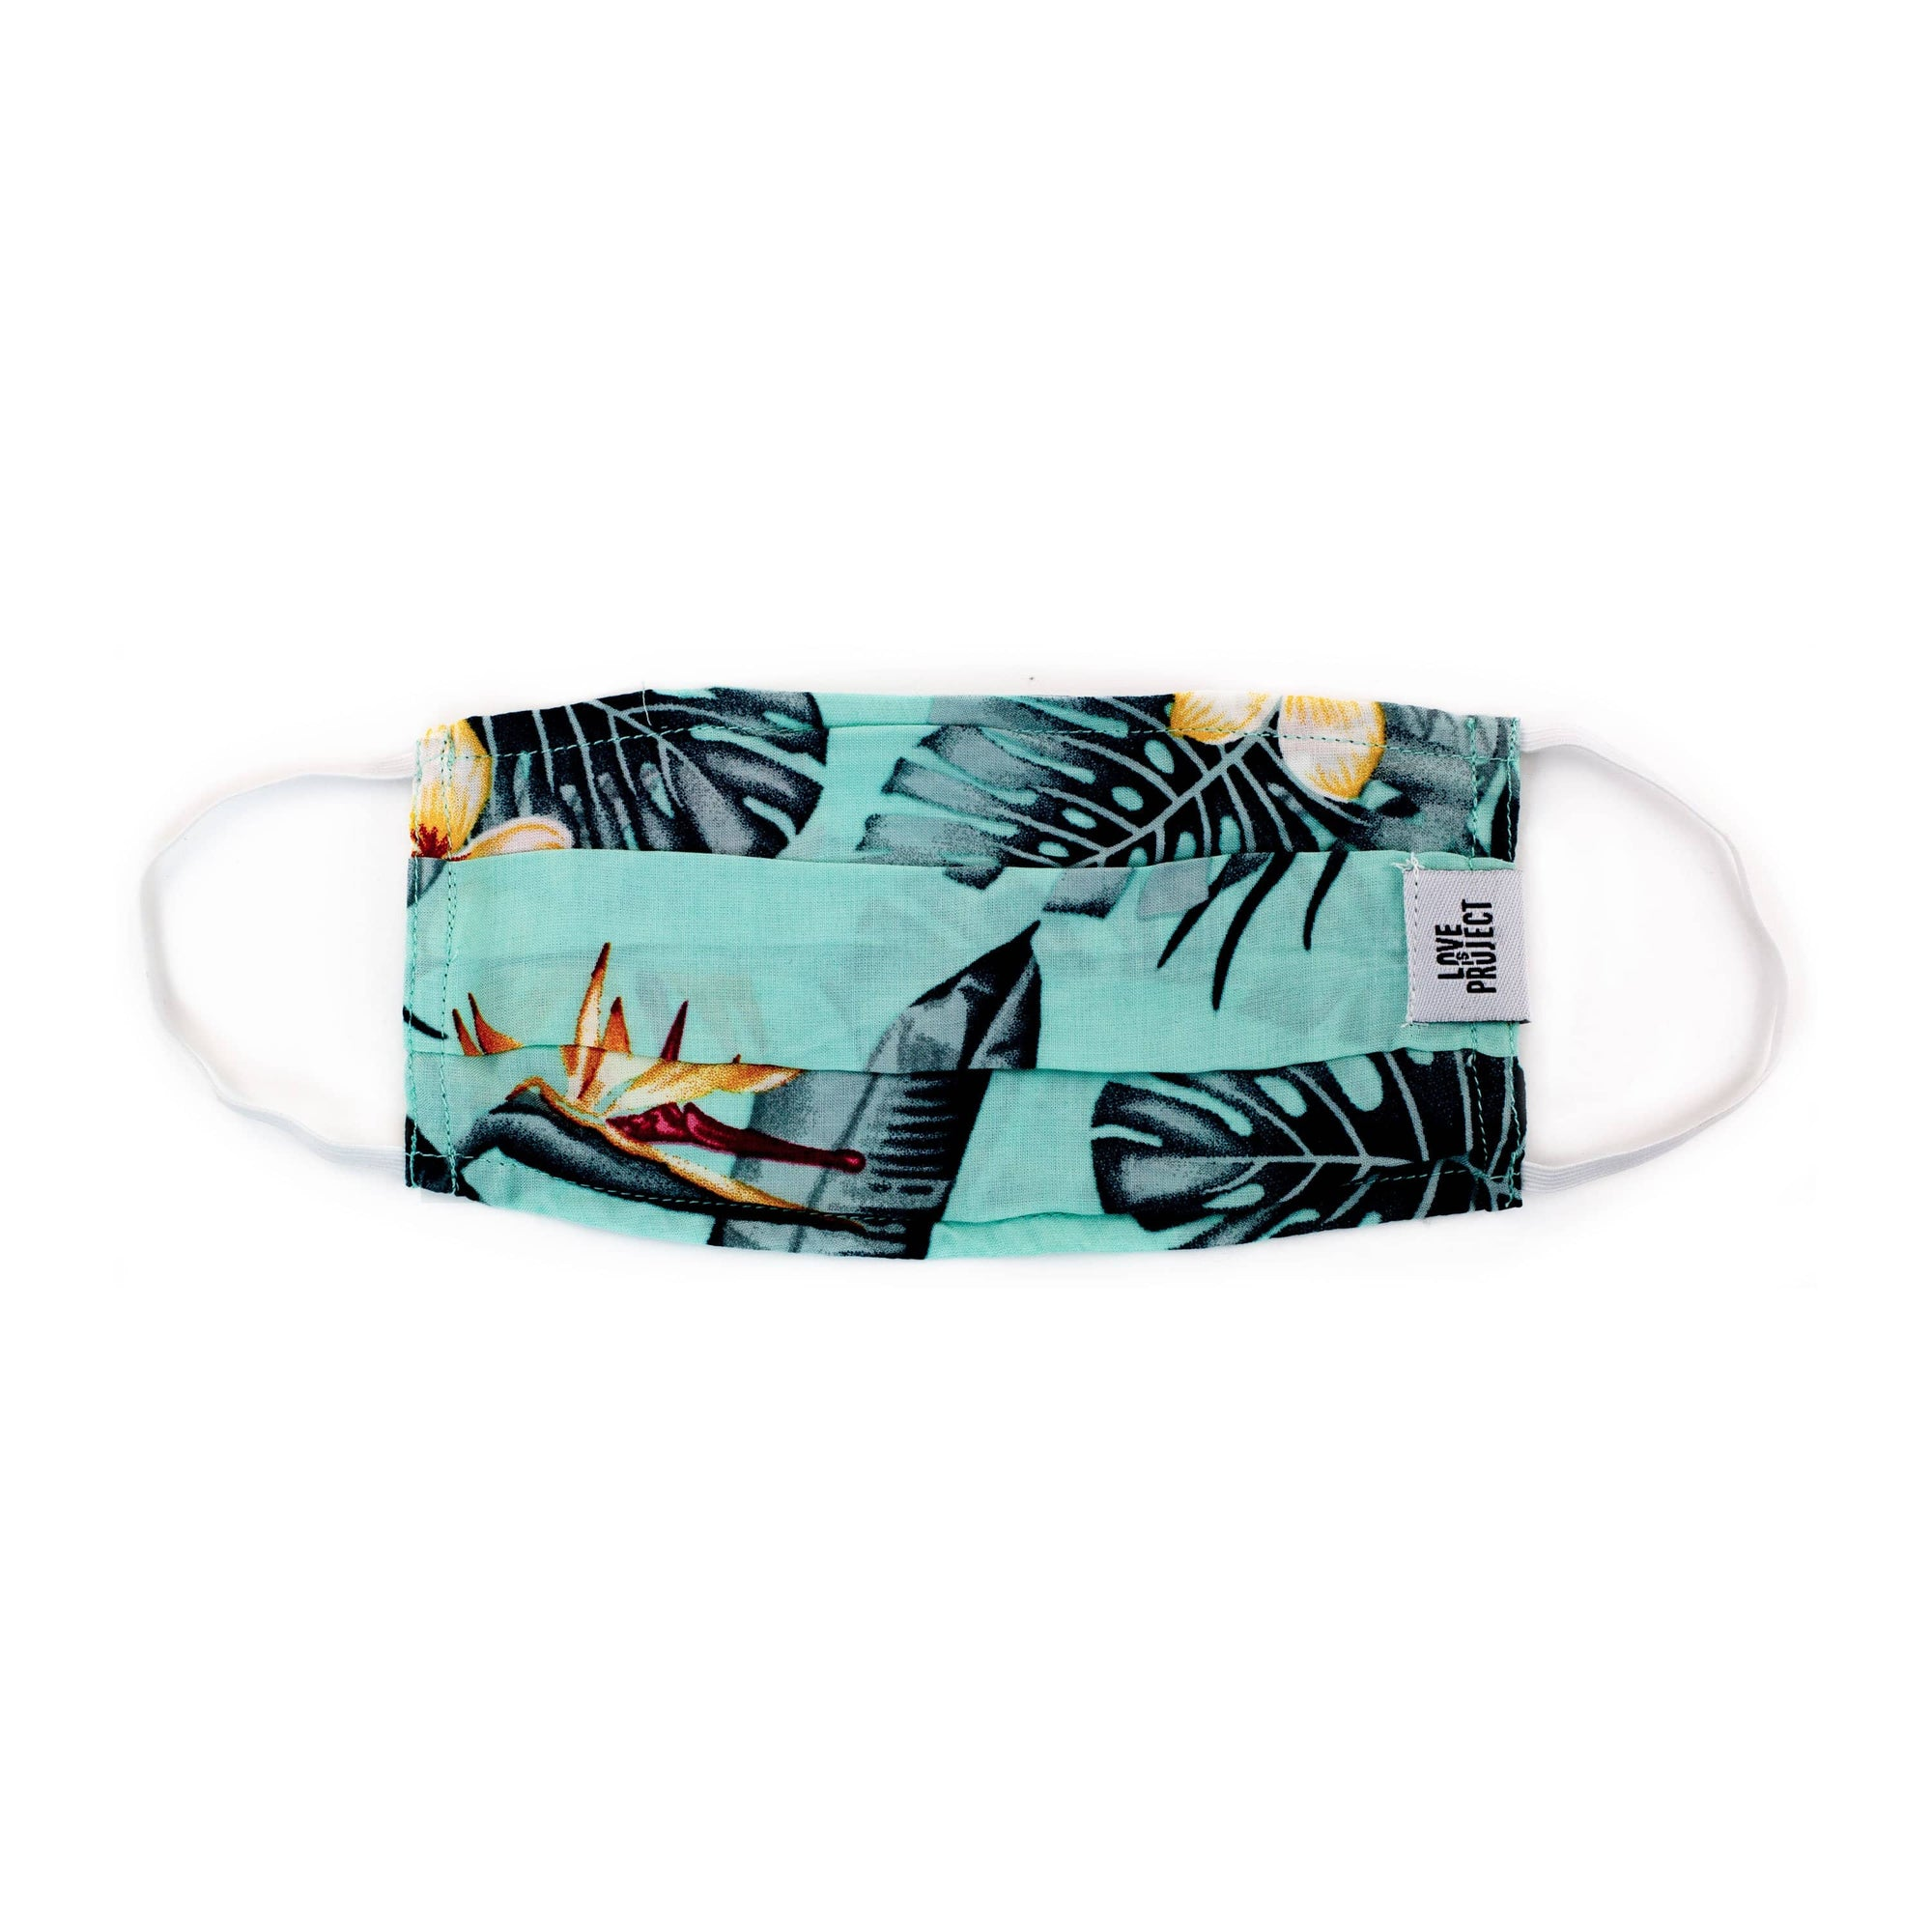 Kids' Aloha Elastic Face Mask - Sea Foam